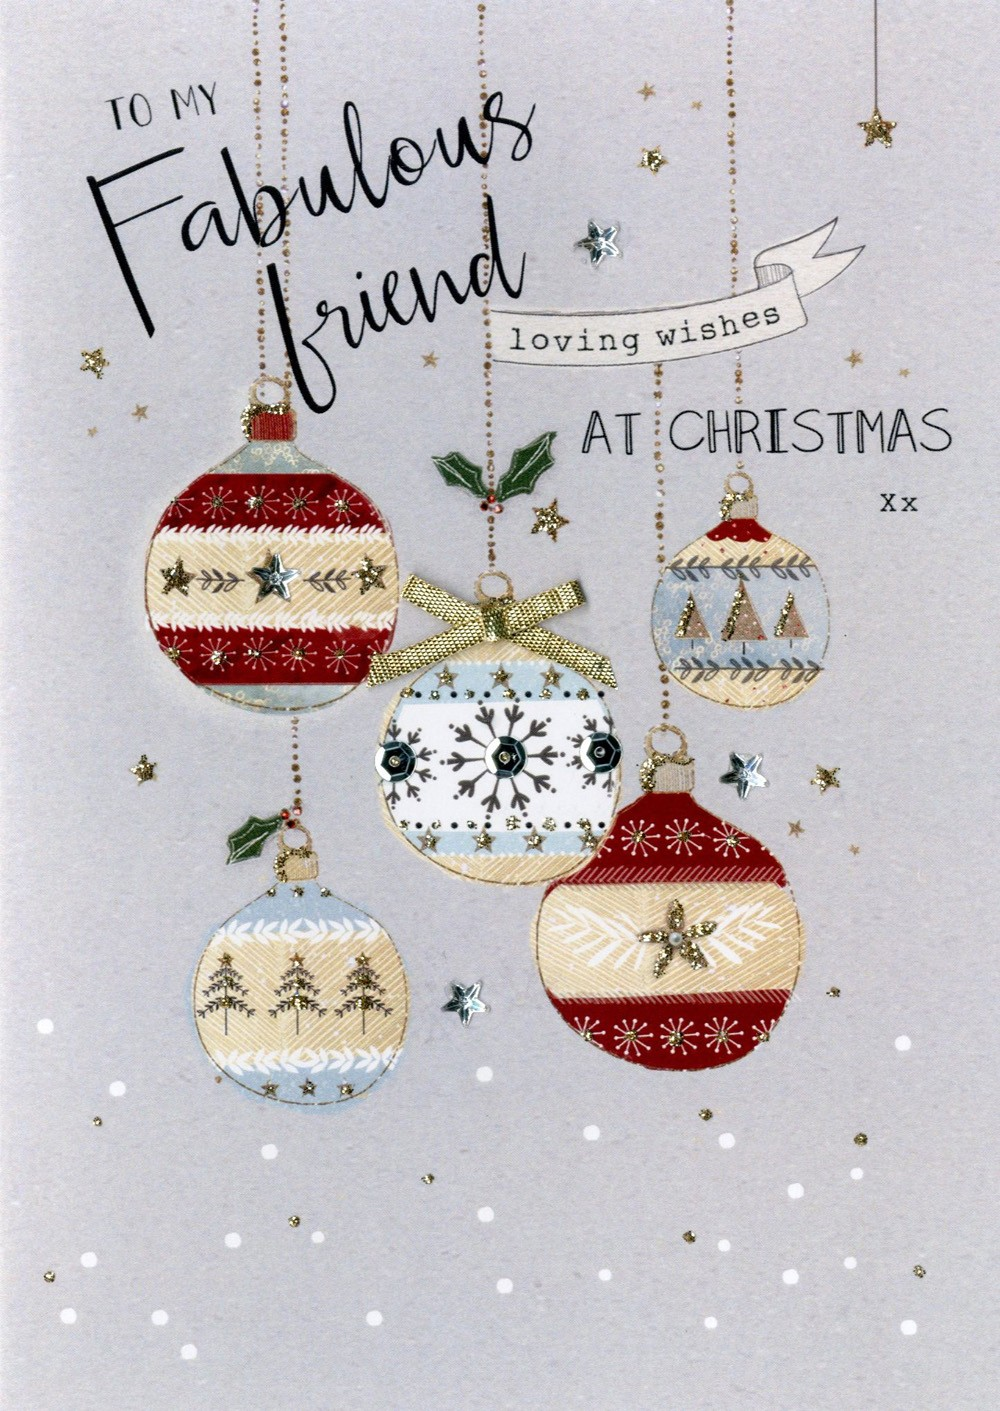 Christmas Greetings for a Friend